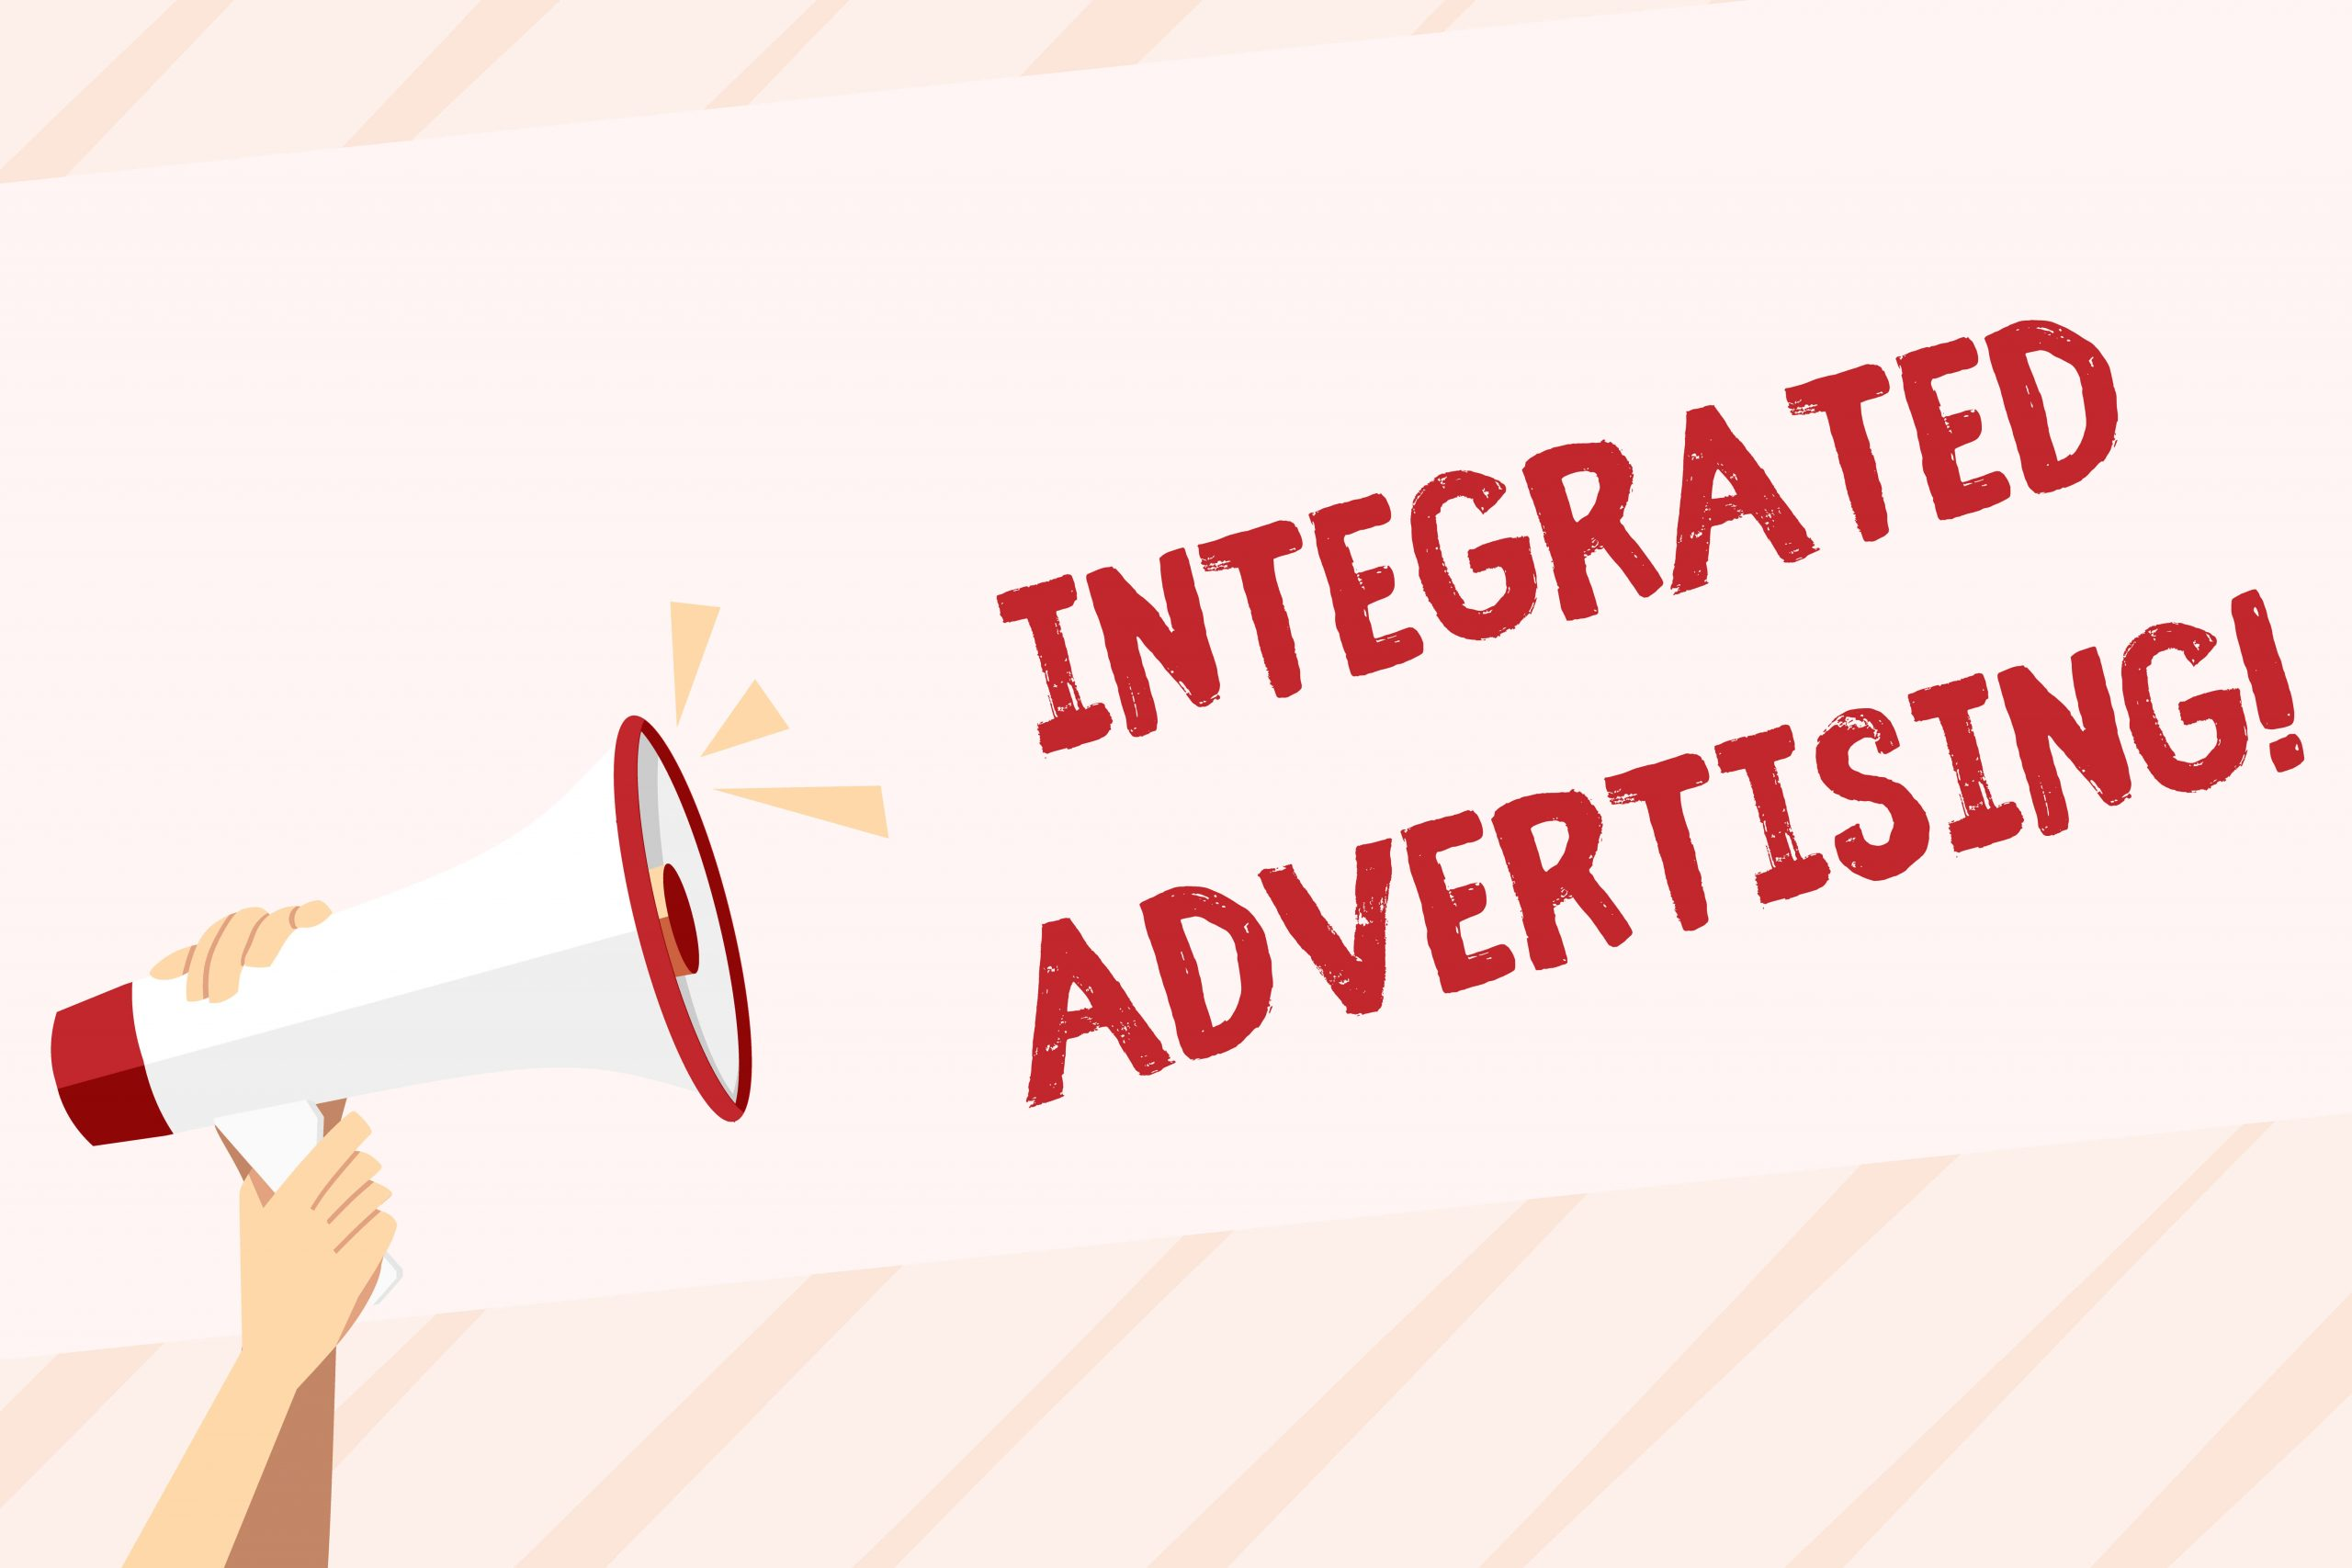 Integrated Advertisment